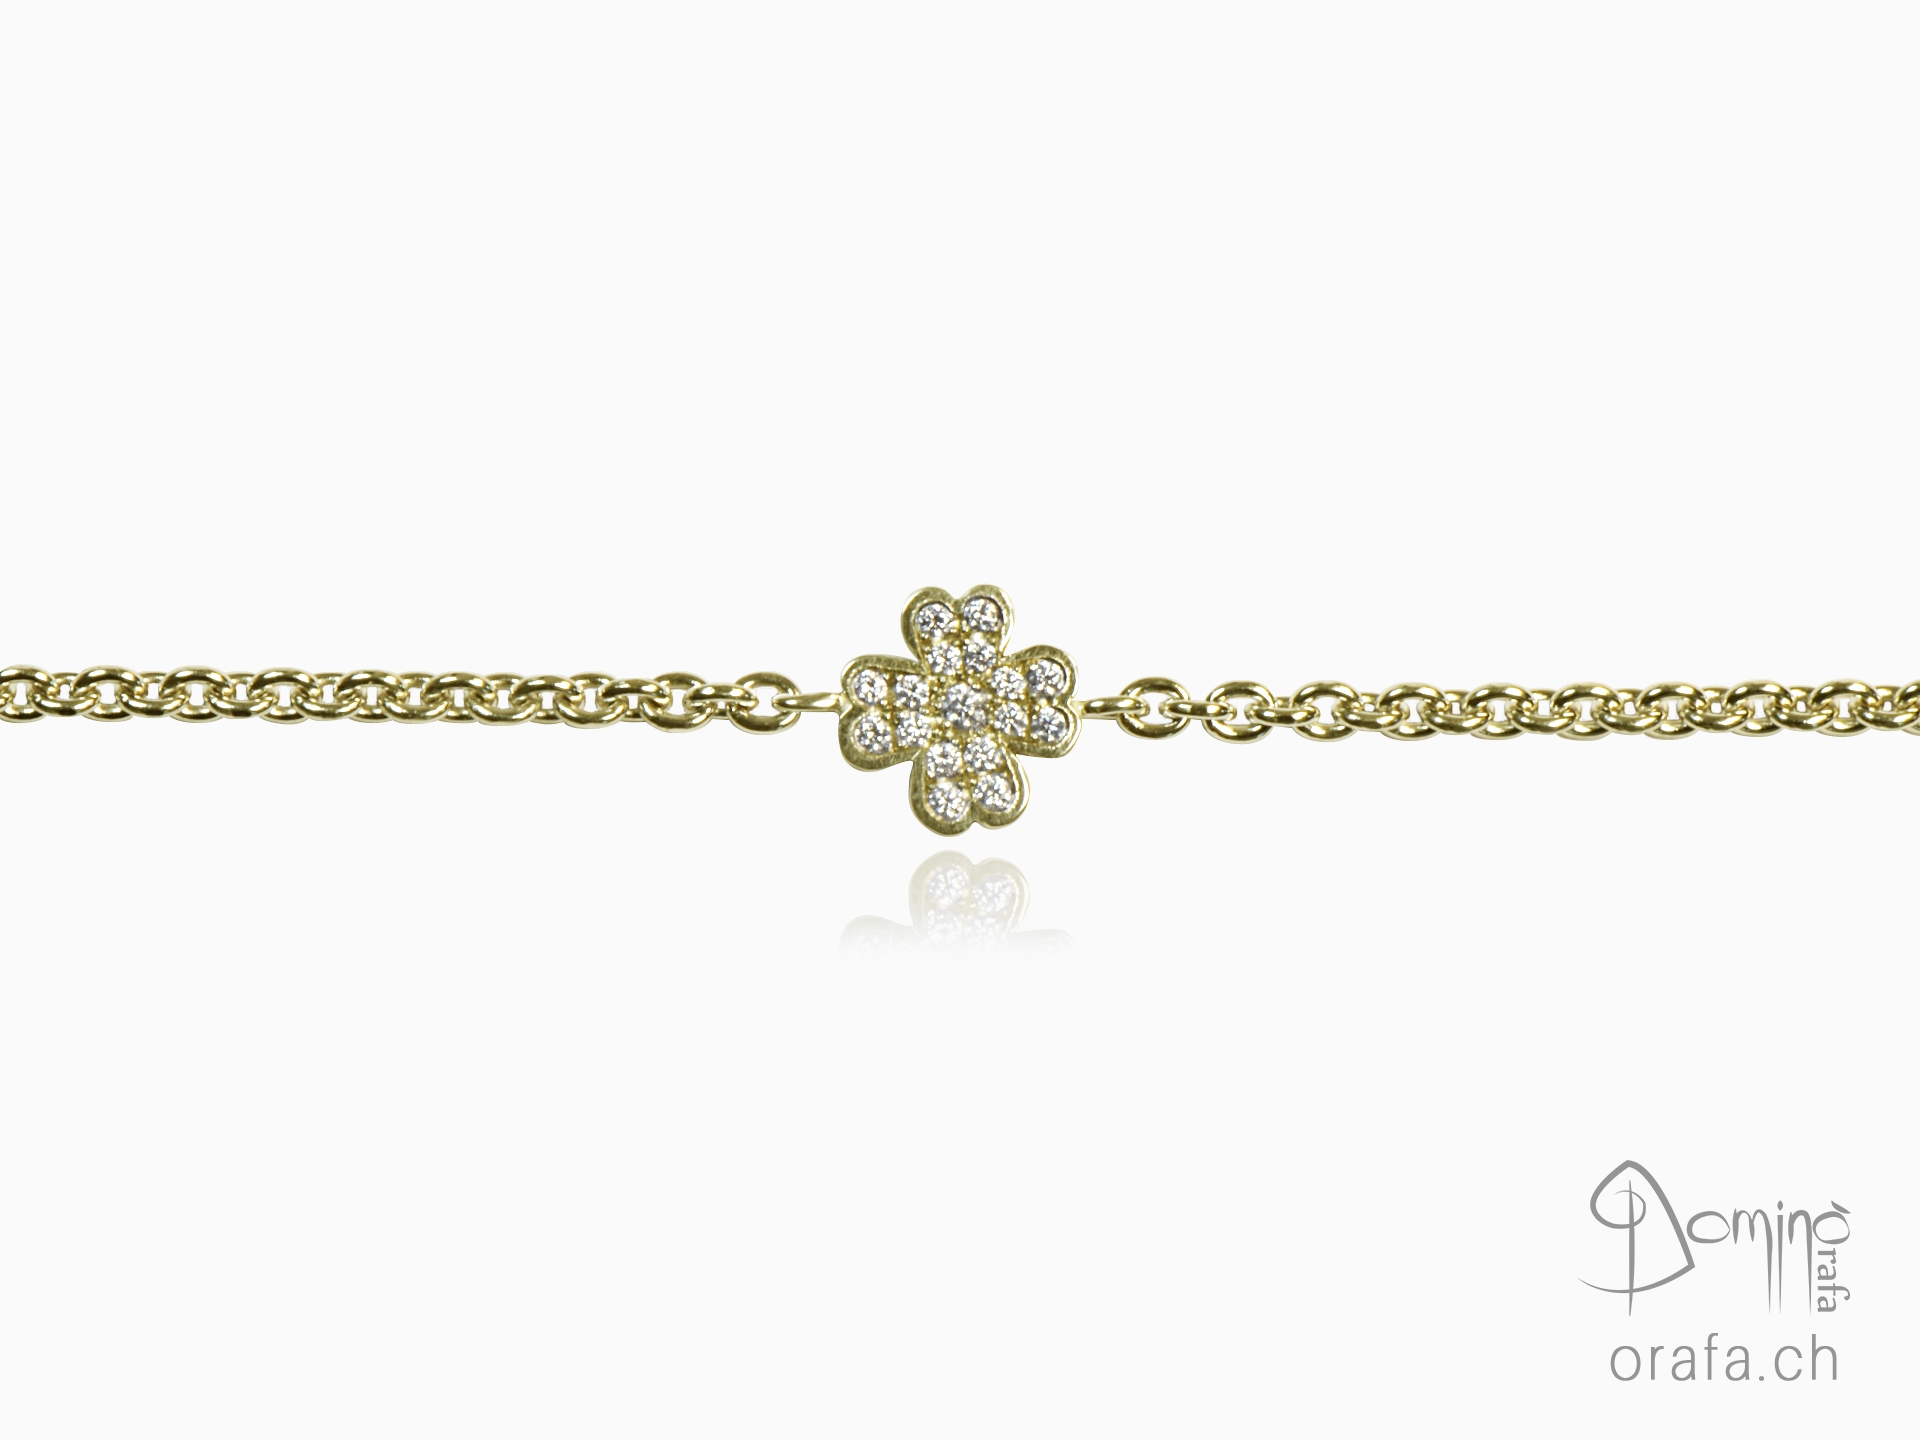 Four leaf clover bracelet with diamonds